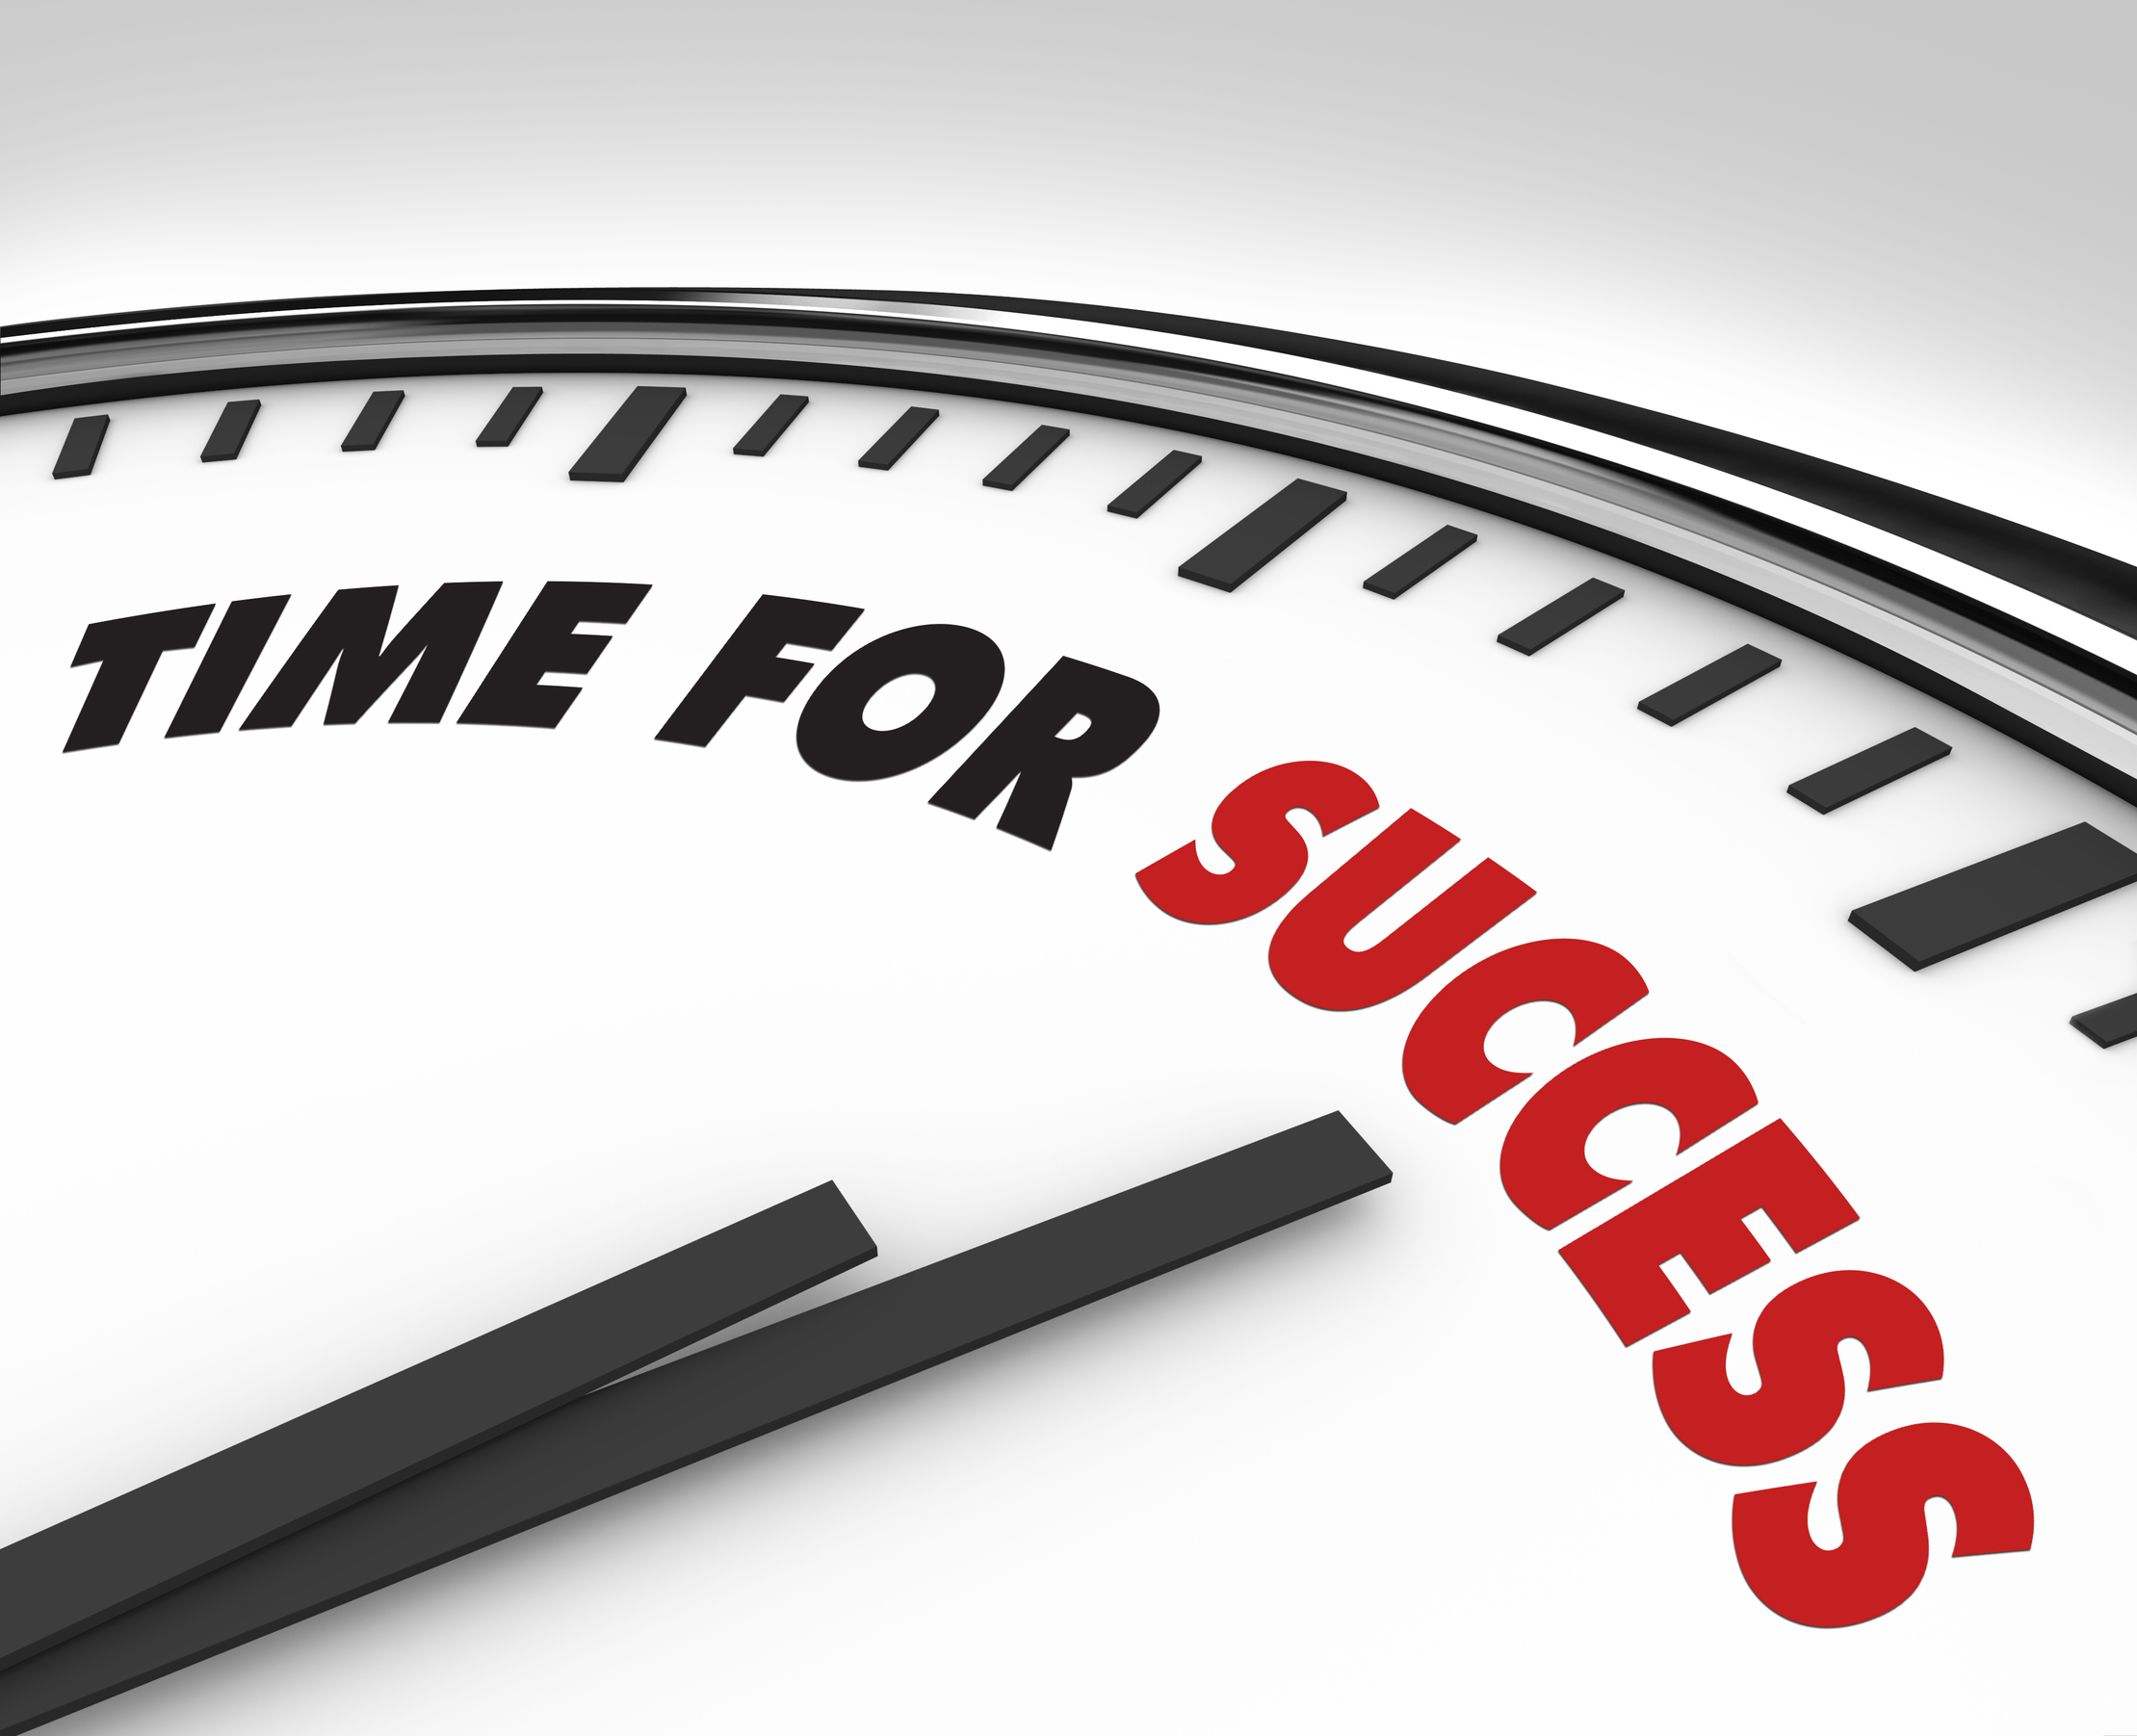 Richard Vanderhurst - Excellent Advice About Time Management That You Will Want To Read